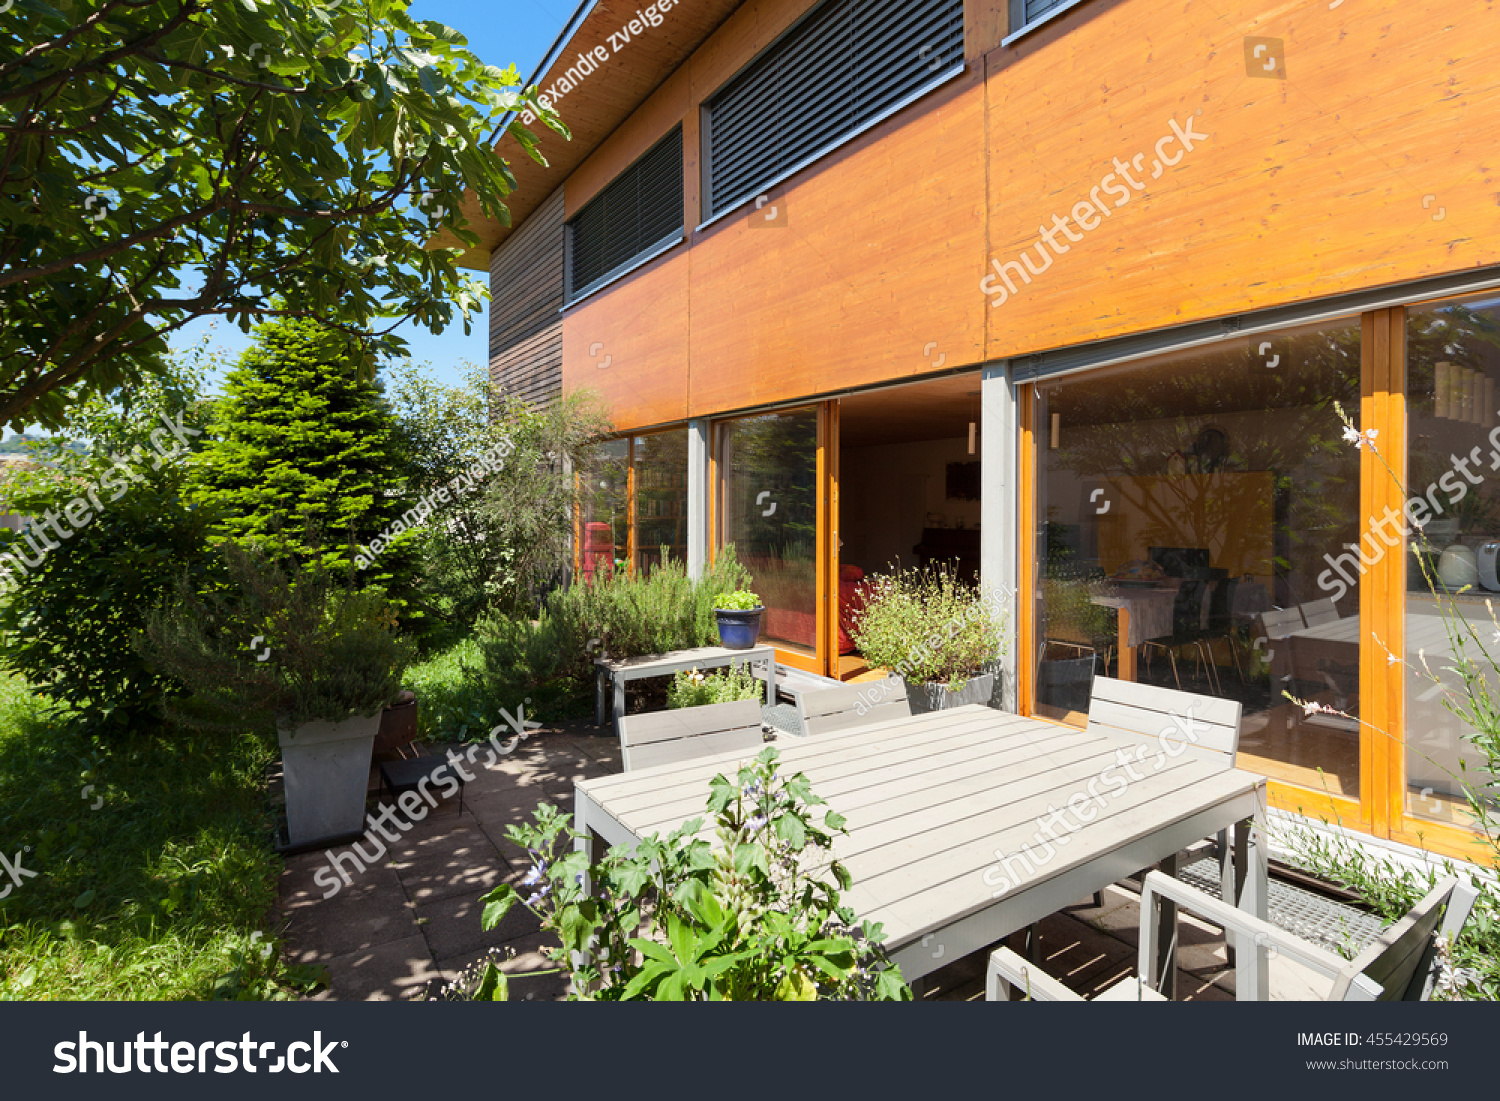 Veranda of a wooden house modern design